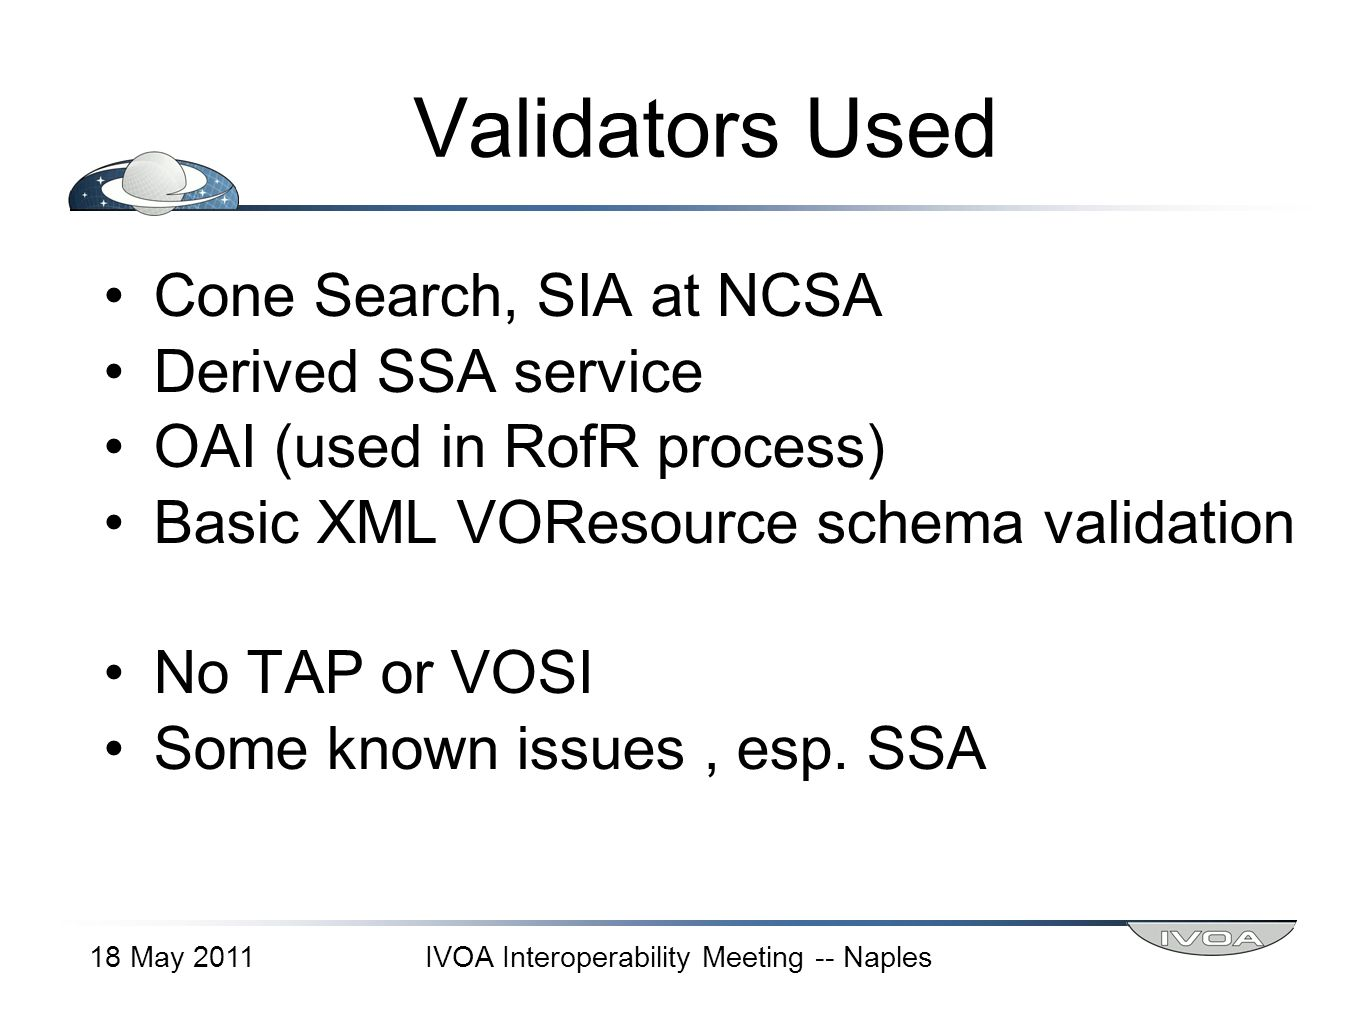 Validators Used Cone Search, SIA at NCSA Derived SSA service OAI (used in RofR process) Basic XML VOResource schema validation No TAP or VOSI Some known issues, esp.